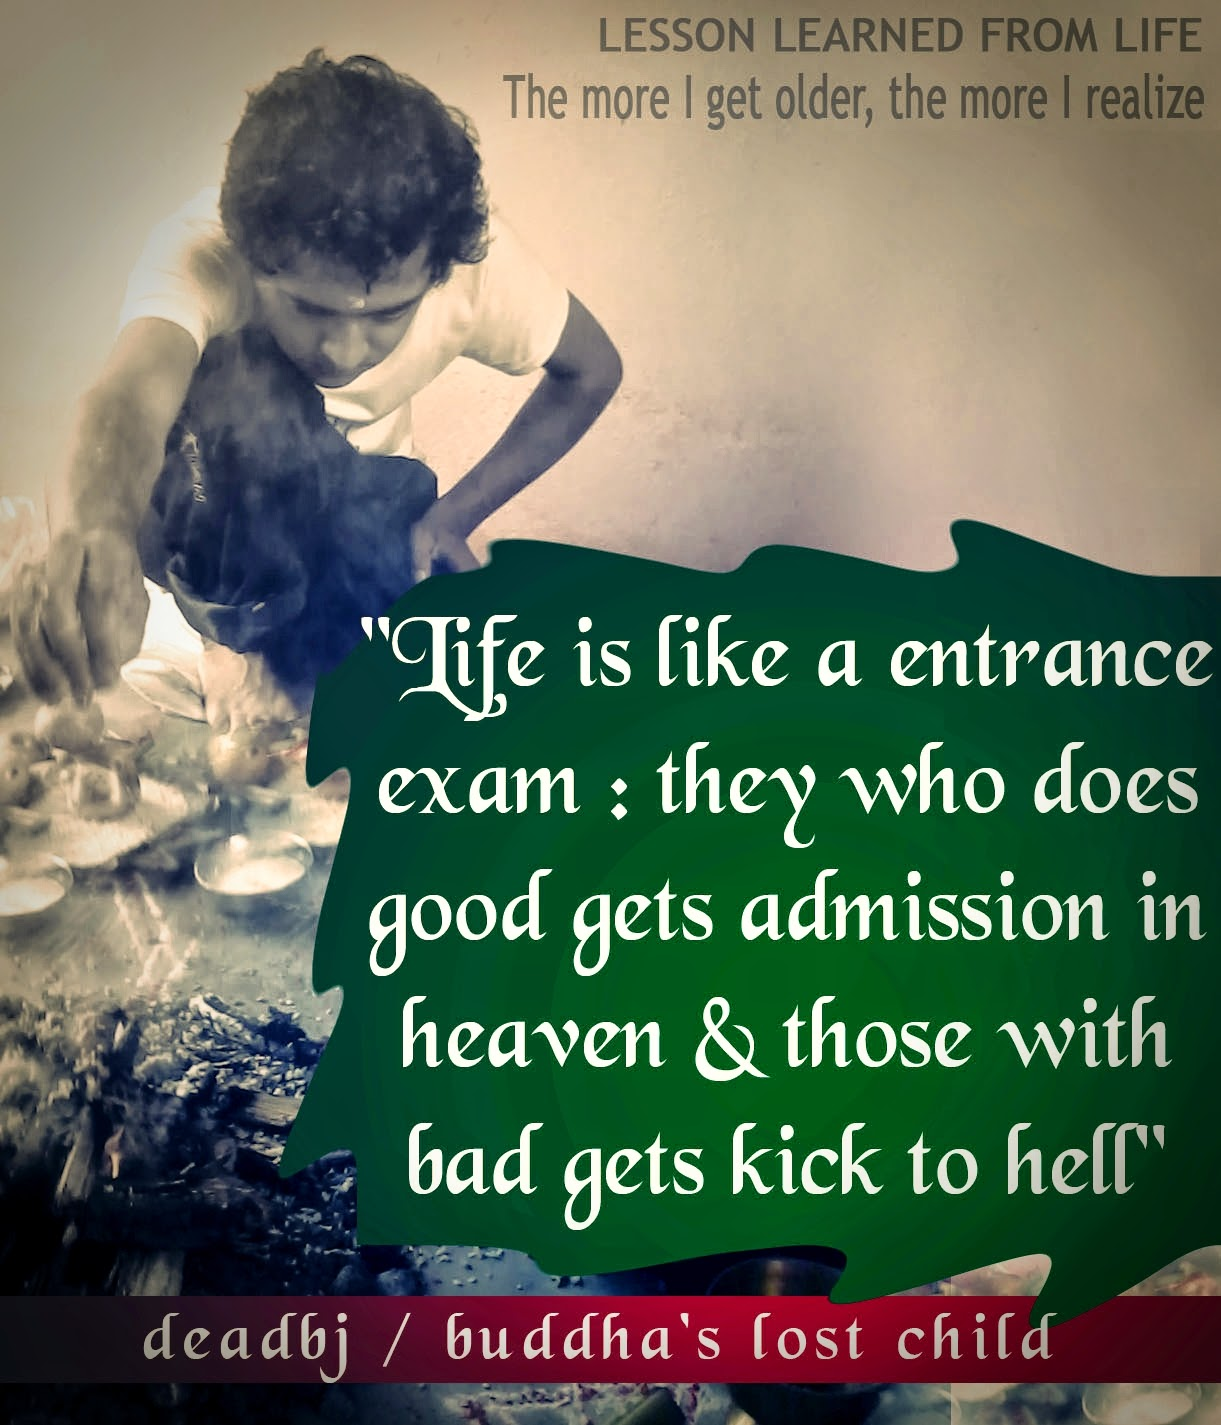 Quotes About Life Buddha Inspirational Quotes From Deadbj Buddha's Lost Child  Bijay Acharya